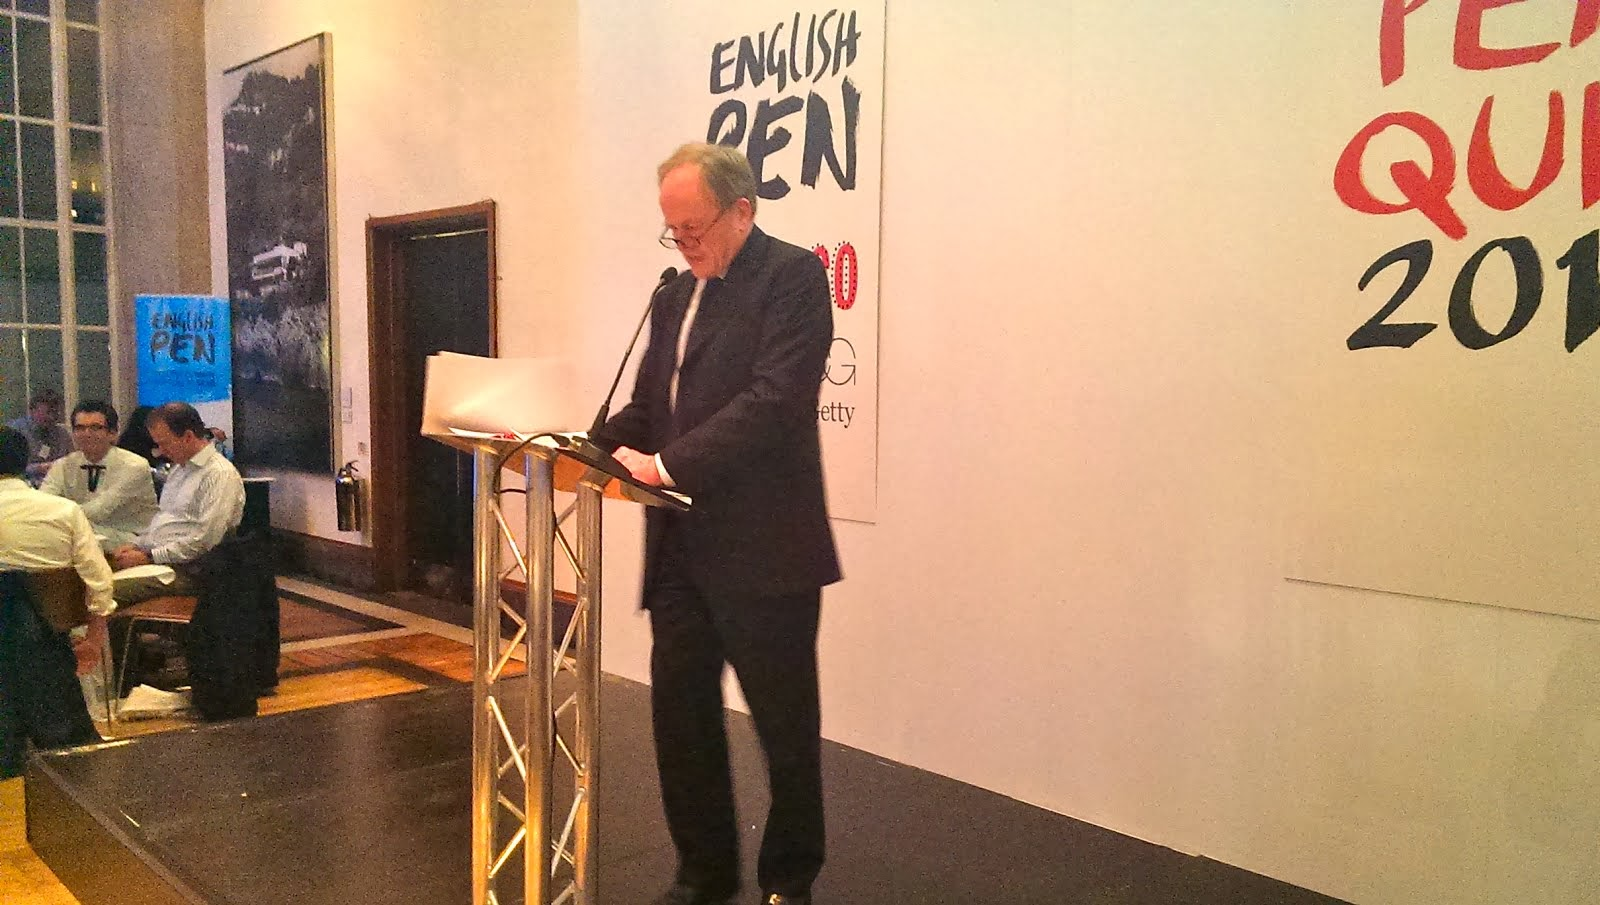 English PEN Quiz 2013 at RIBA with Clive Anderson